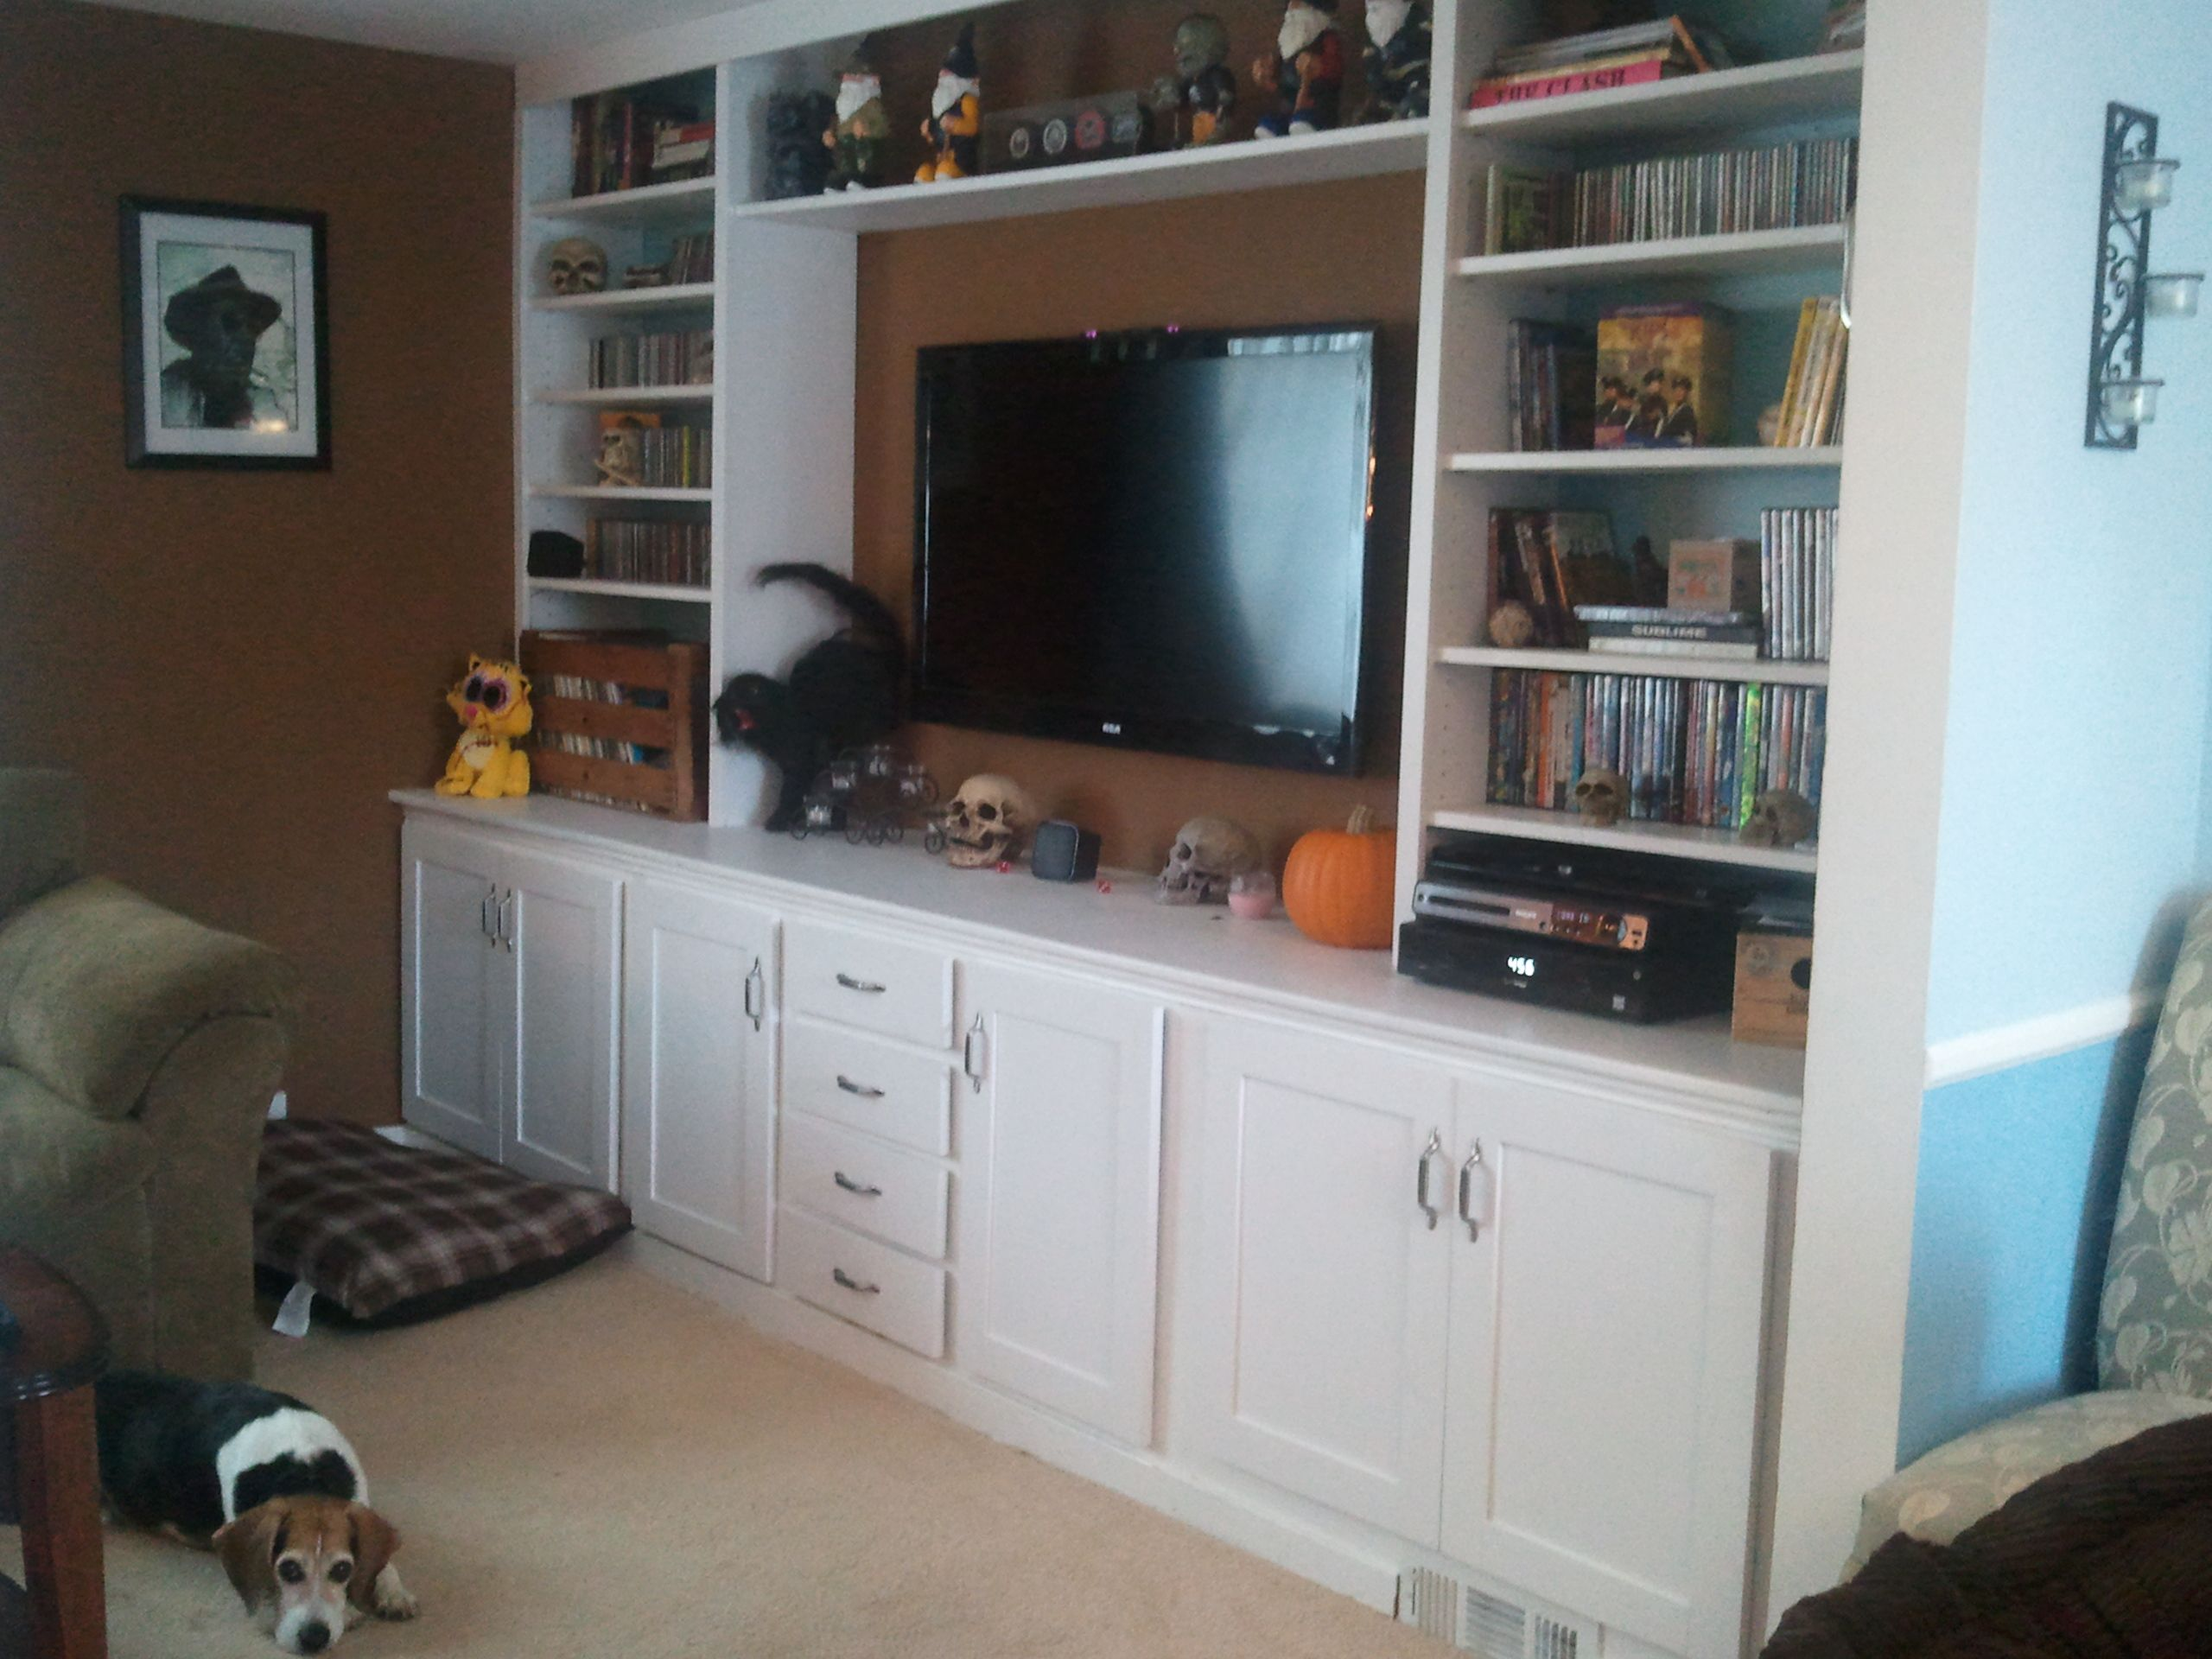 Super Storage TV Wall | Do It Yourself Home Projects from Ana White ...